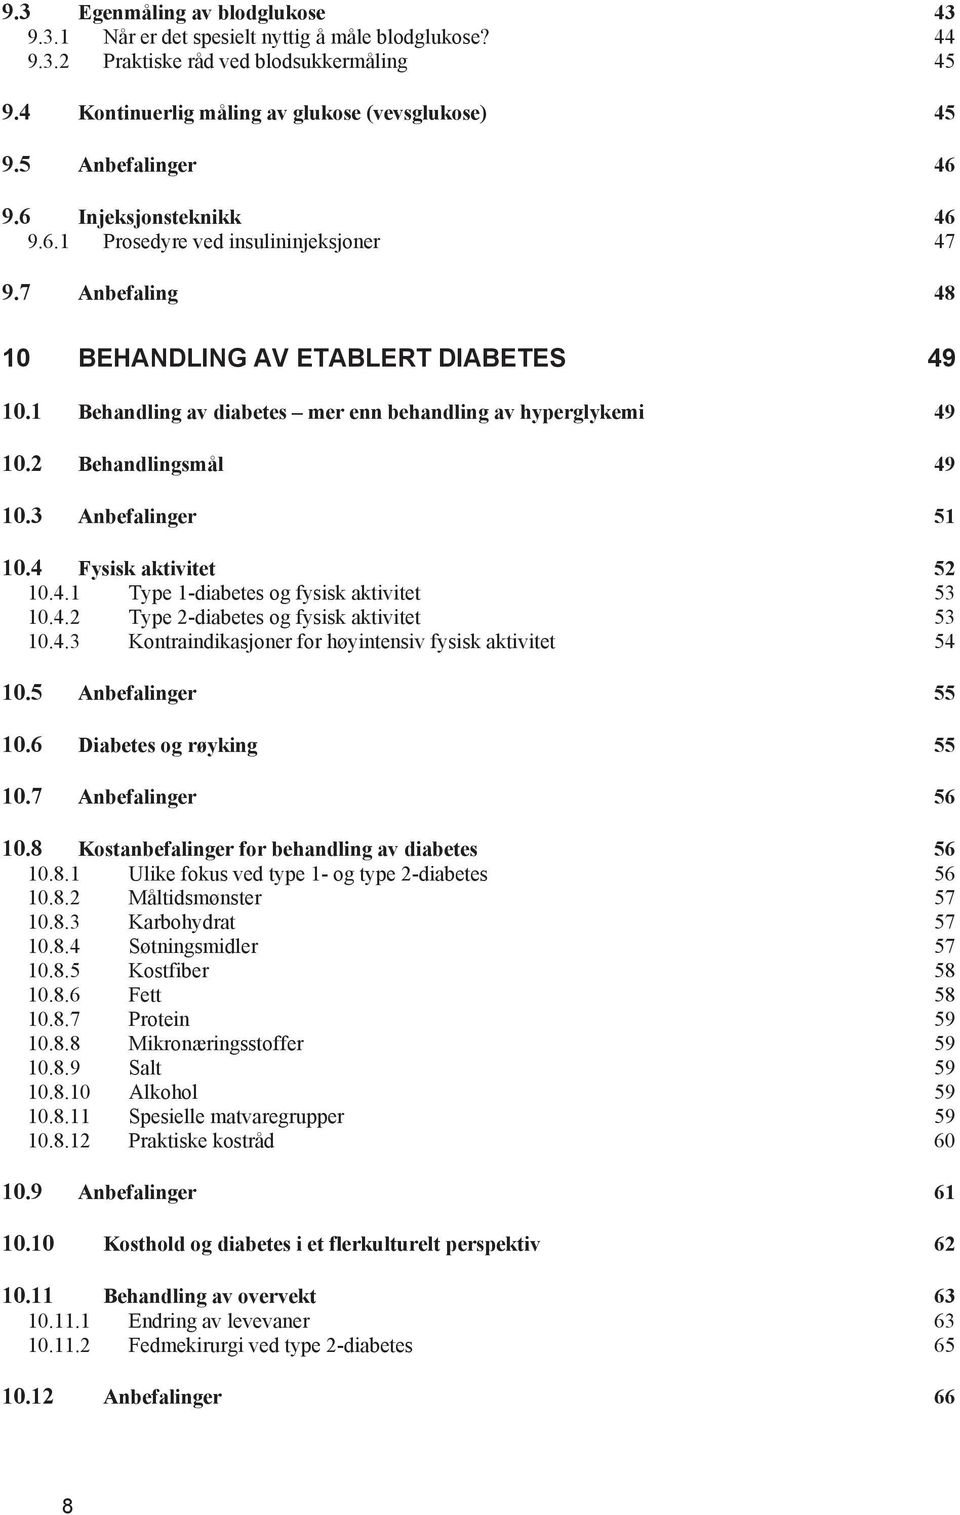 1 Behandling av diabetes mer enn behandling av hyperglykemi 49 10.2 Behandlingsmål 49 10.3 Anbefalinger 51 10.4 Fysisk aktivitet 52 10.4.1 Type 1-diabetes og fysisk aktivitet 53 10.4.2 Type 2-diabetes og fysisk aktivitet 53 10.